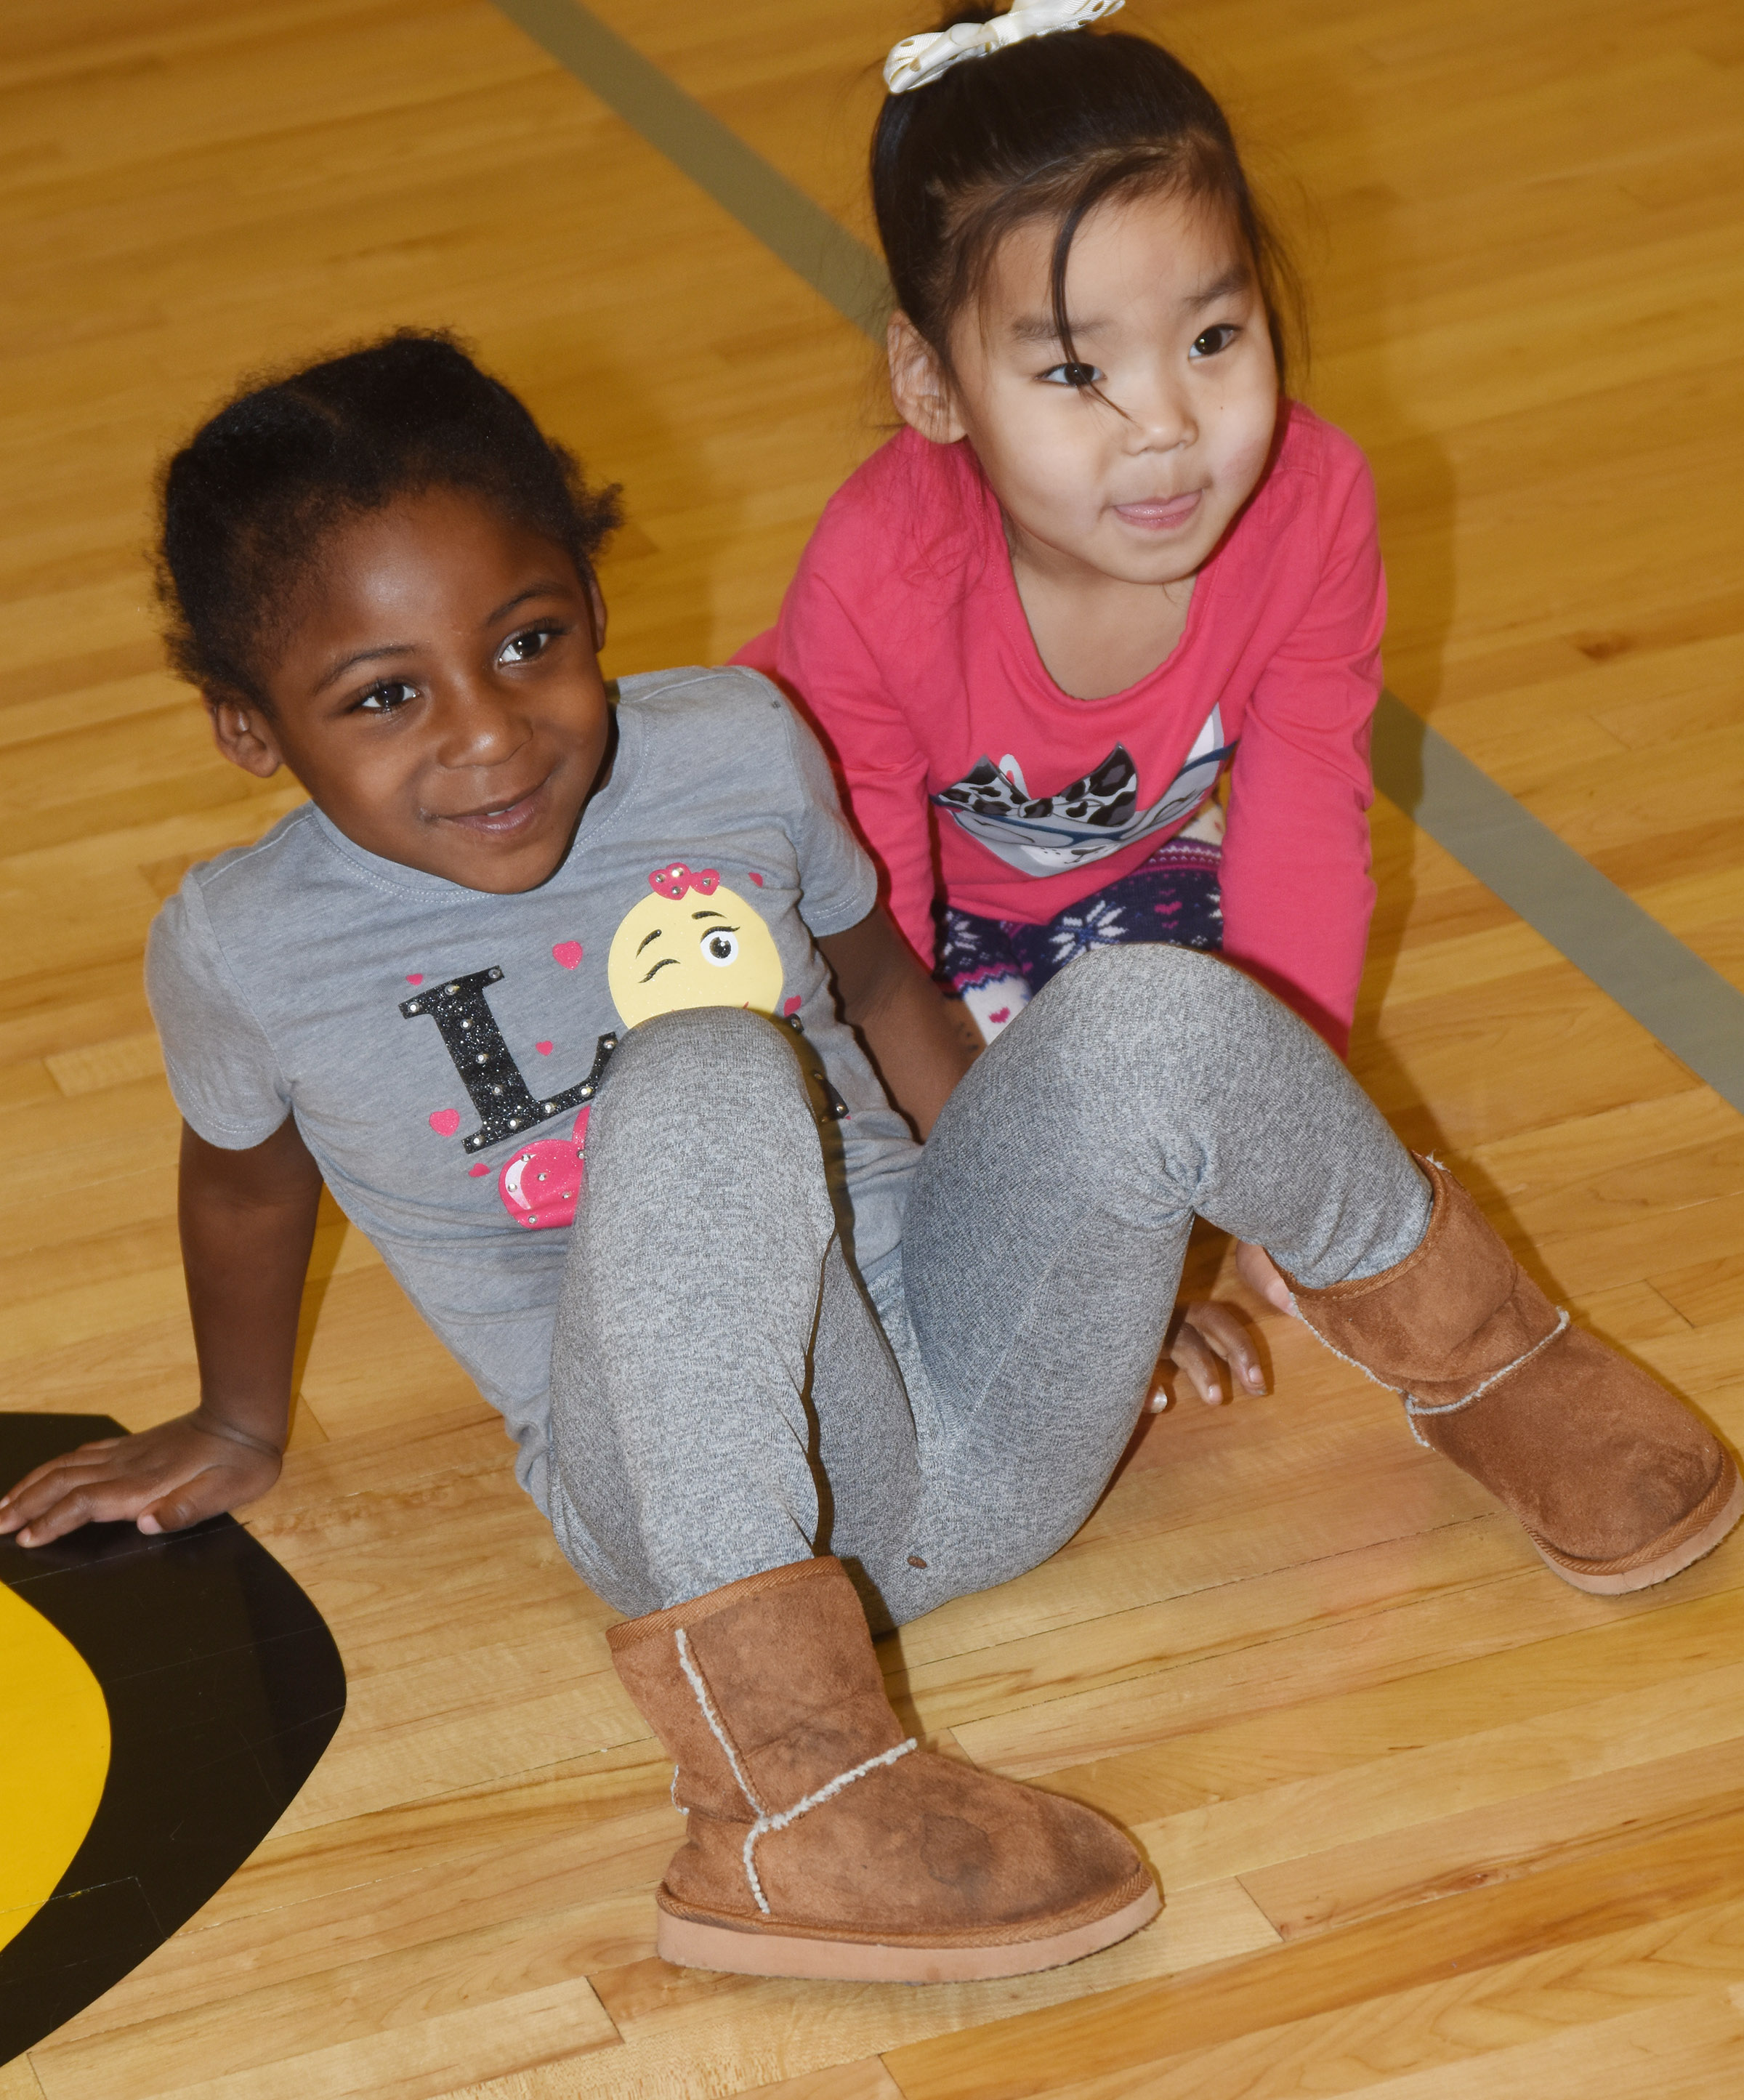 CES preschool students Harmony Brown, at left, and Marla Bat have fun together.